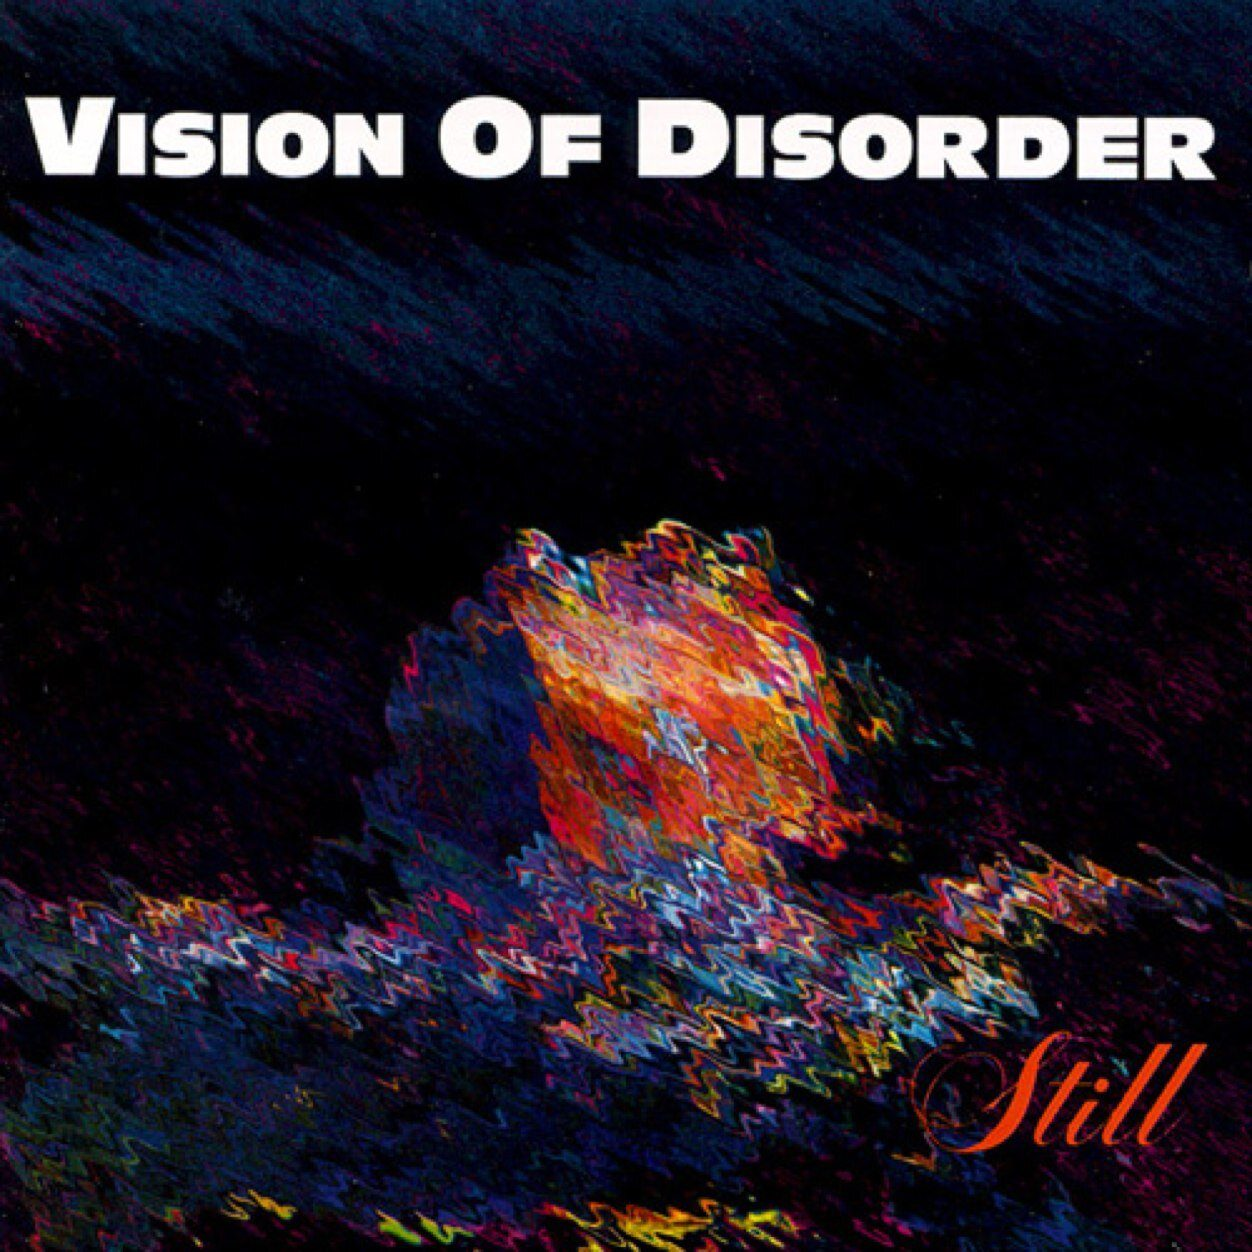 Vision of Disorder – Still 20th Anniversary Deluxe Re-Issue